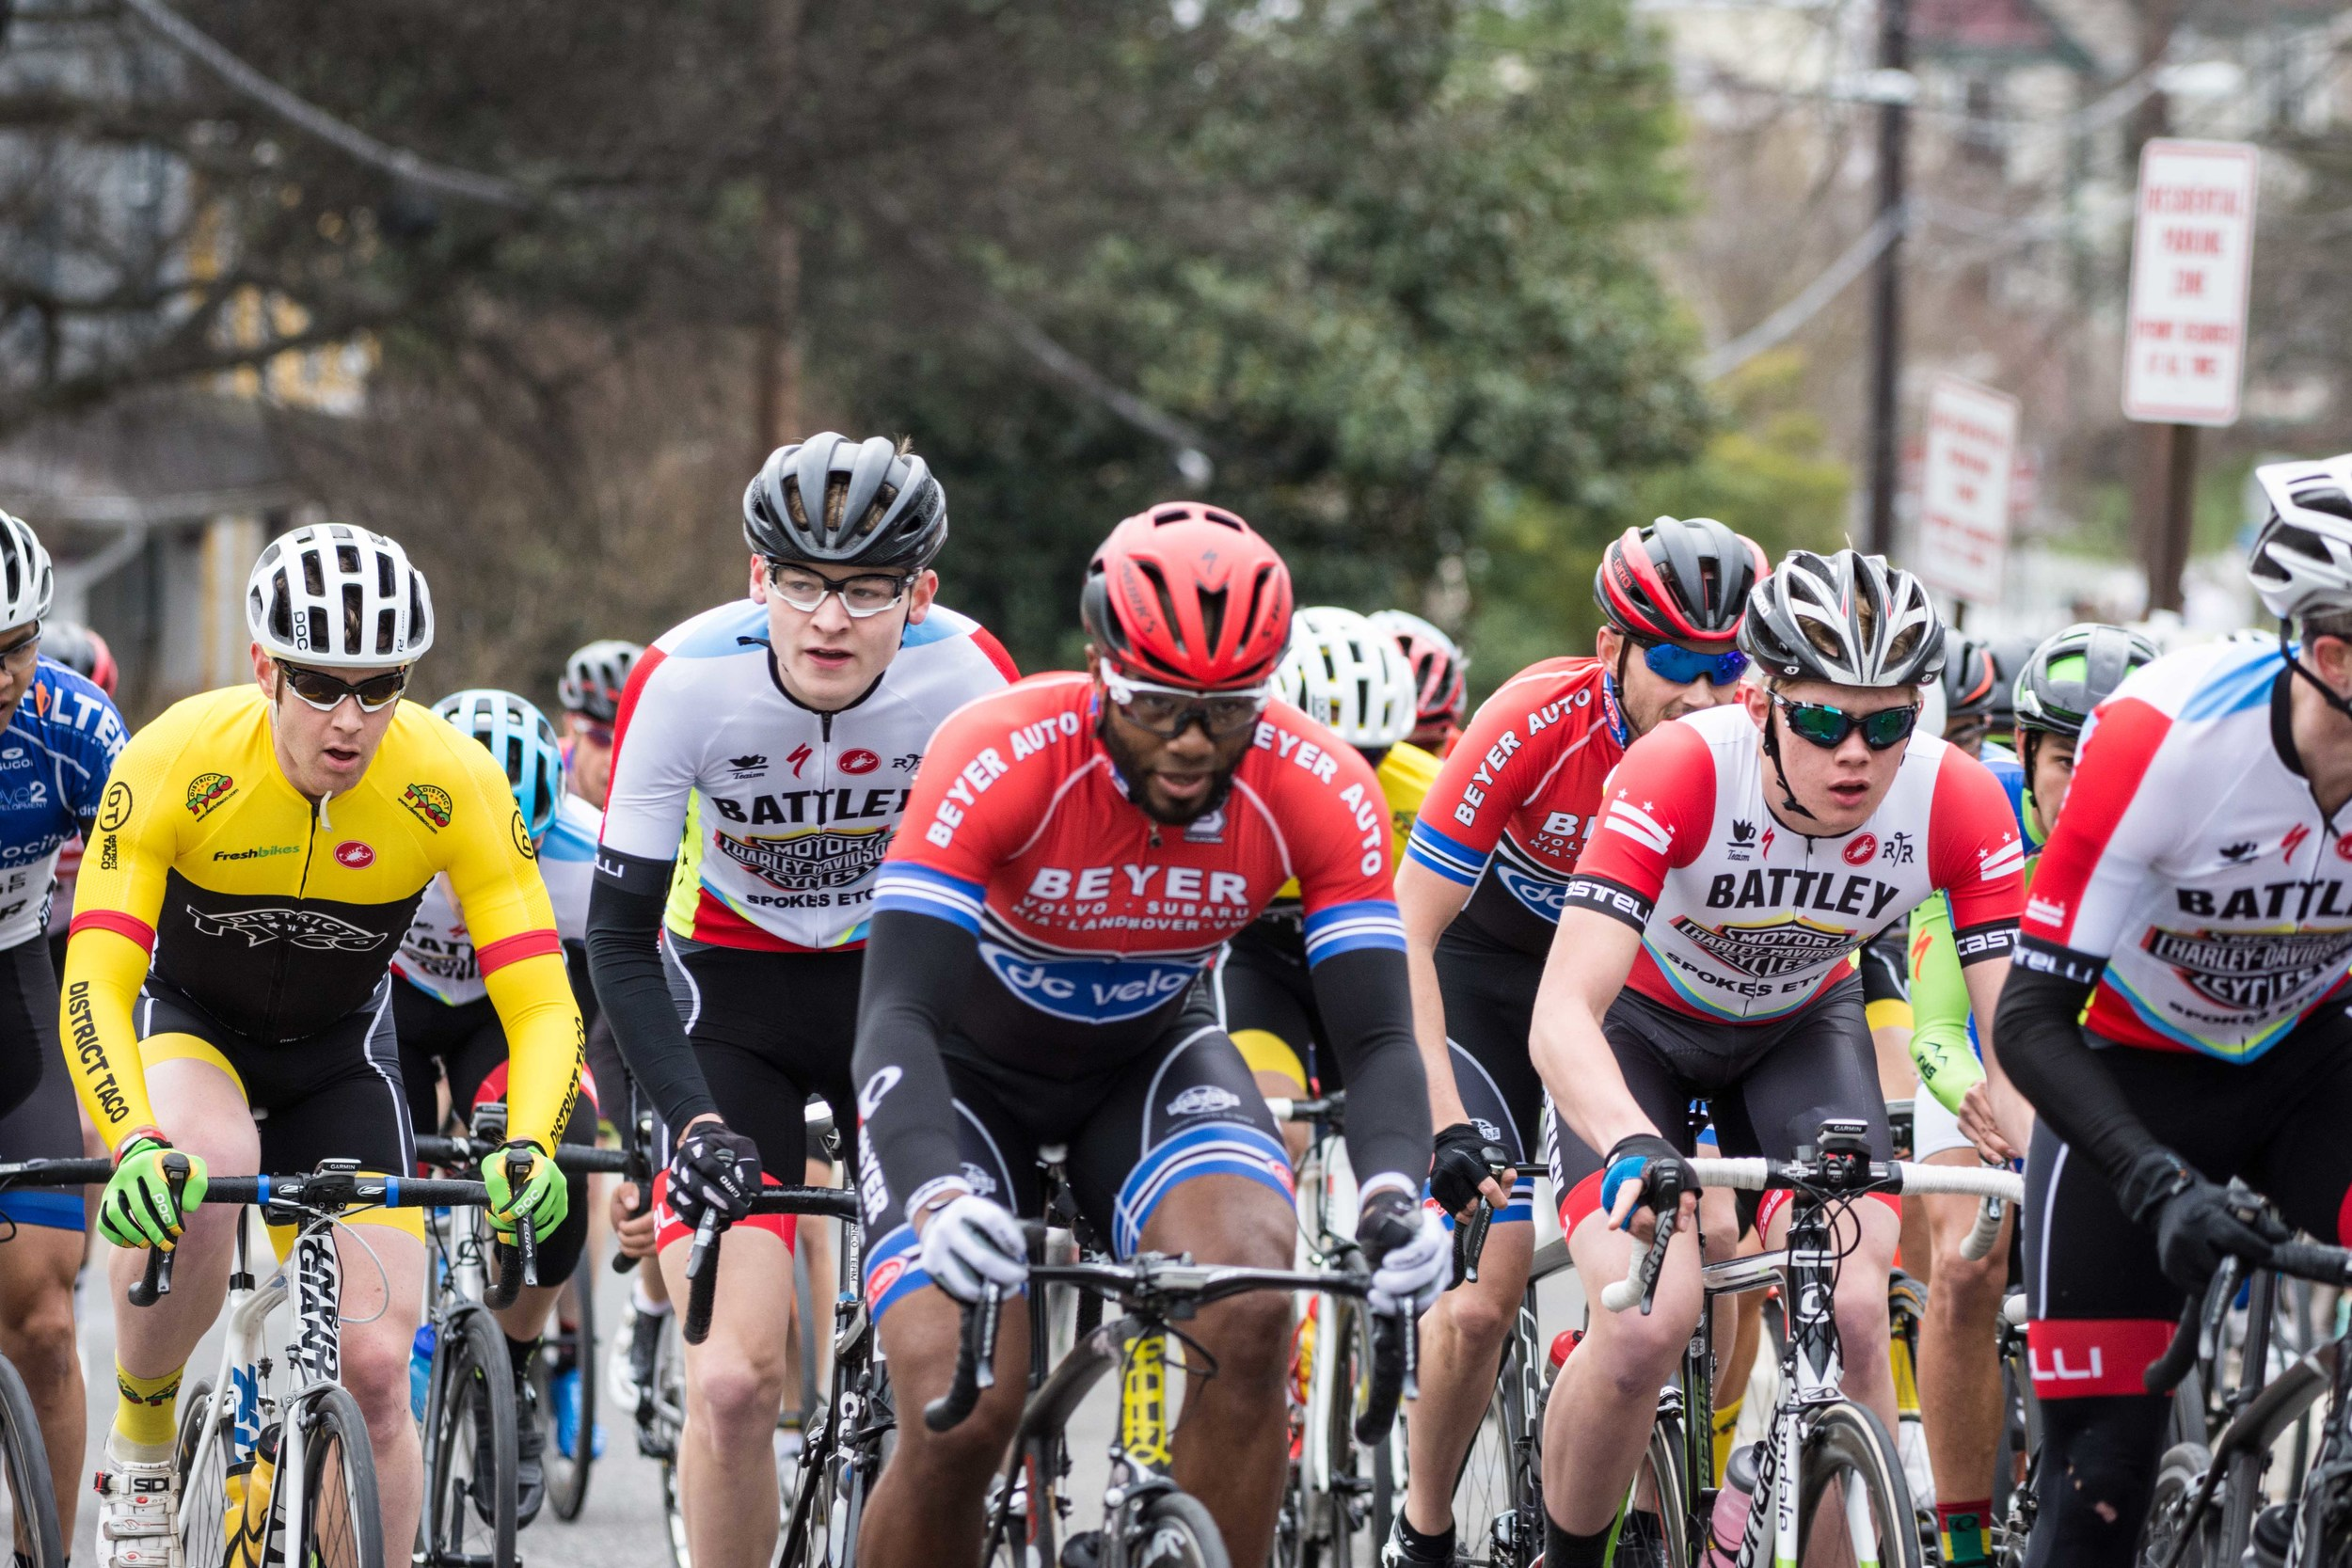 20160312110810 Route One Rampage Criterium 0606.jpg